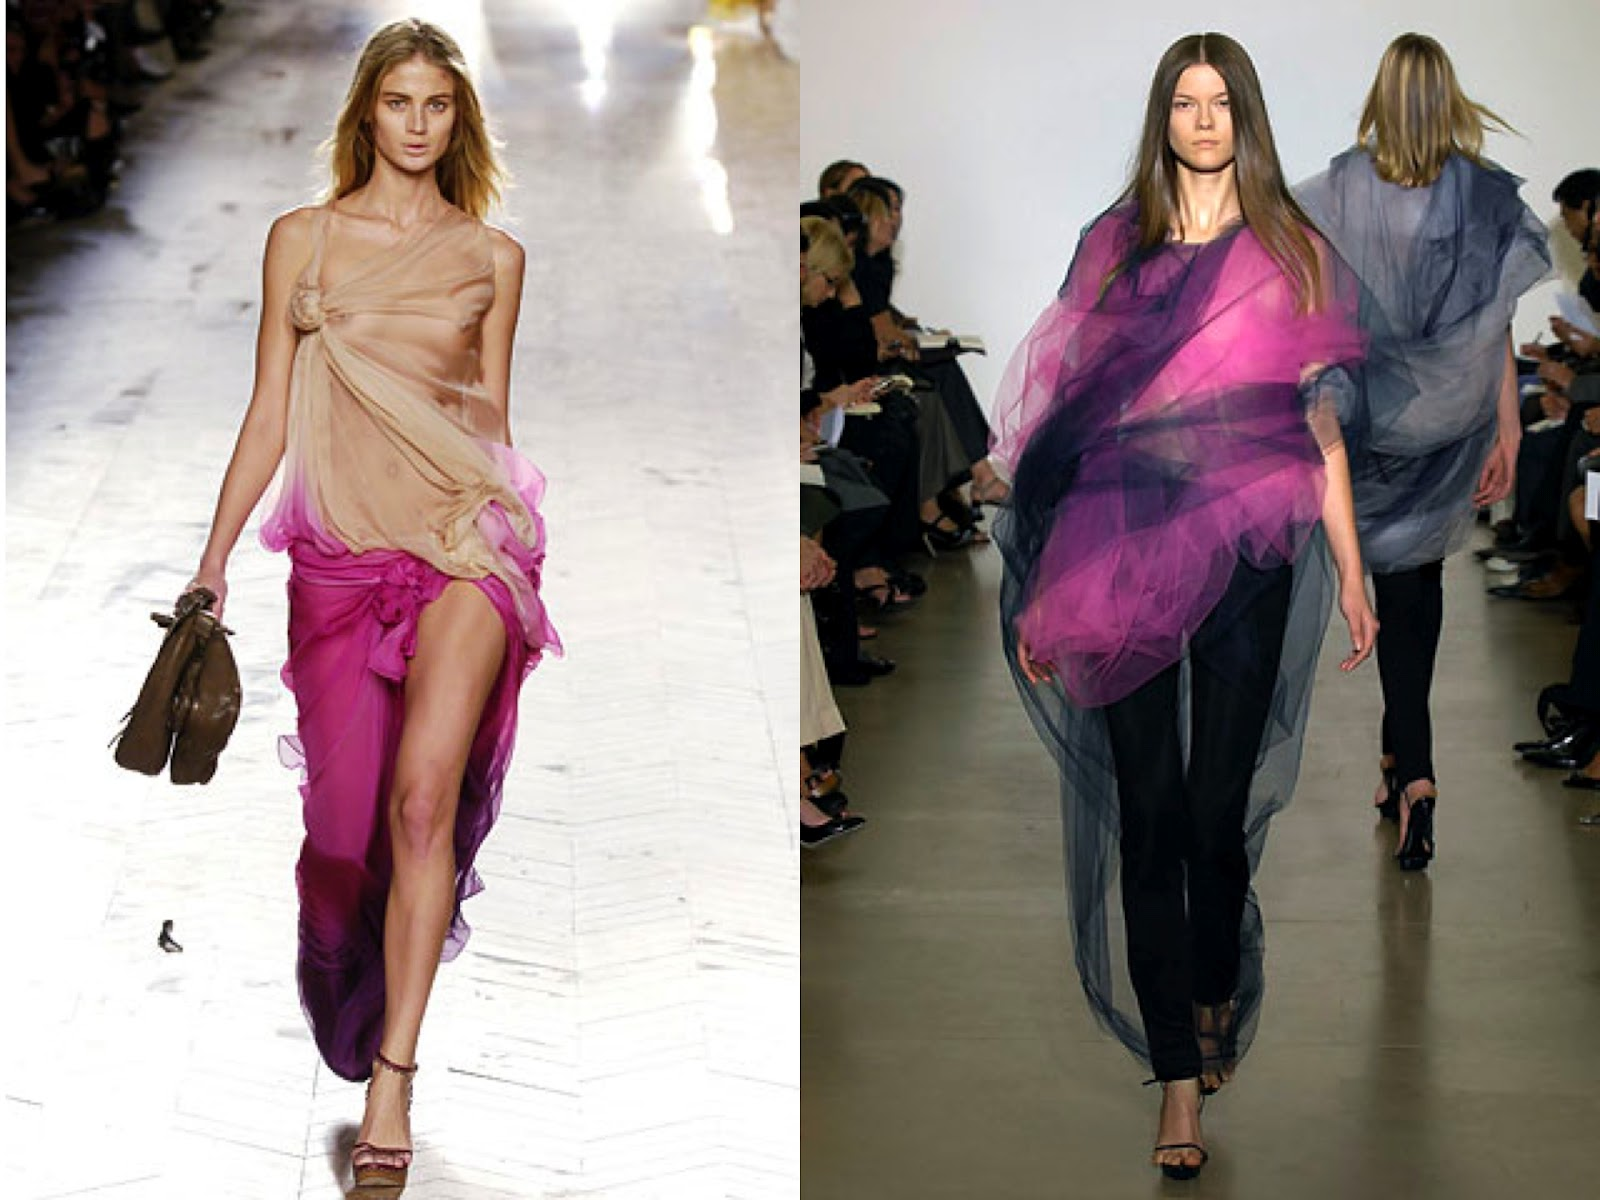 0d784a04f INTO THE FASHION  INTO THE SAME IDEA... John Galliano VS. Raf Simons